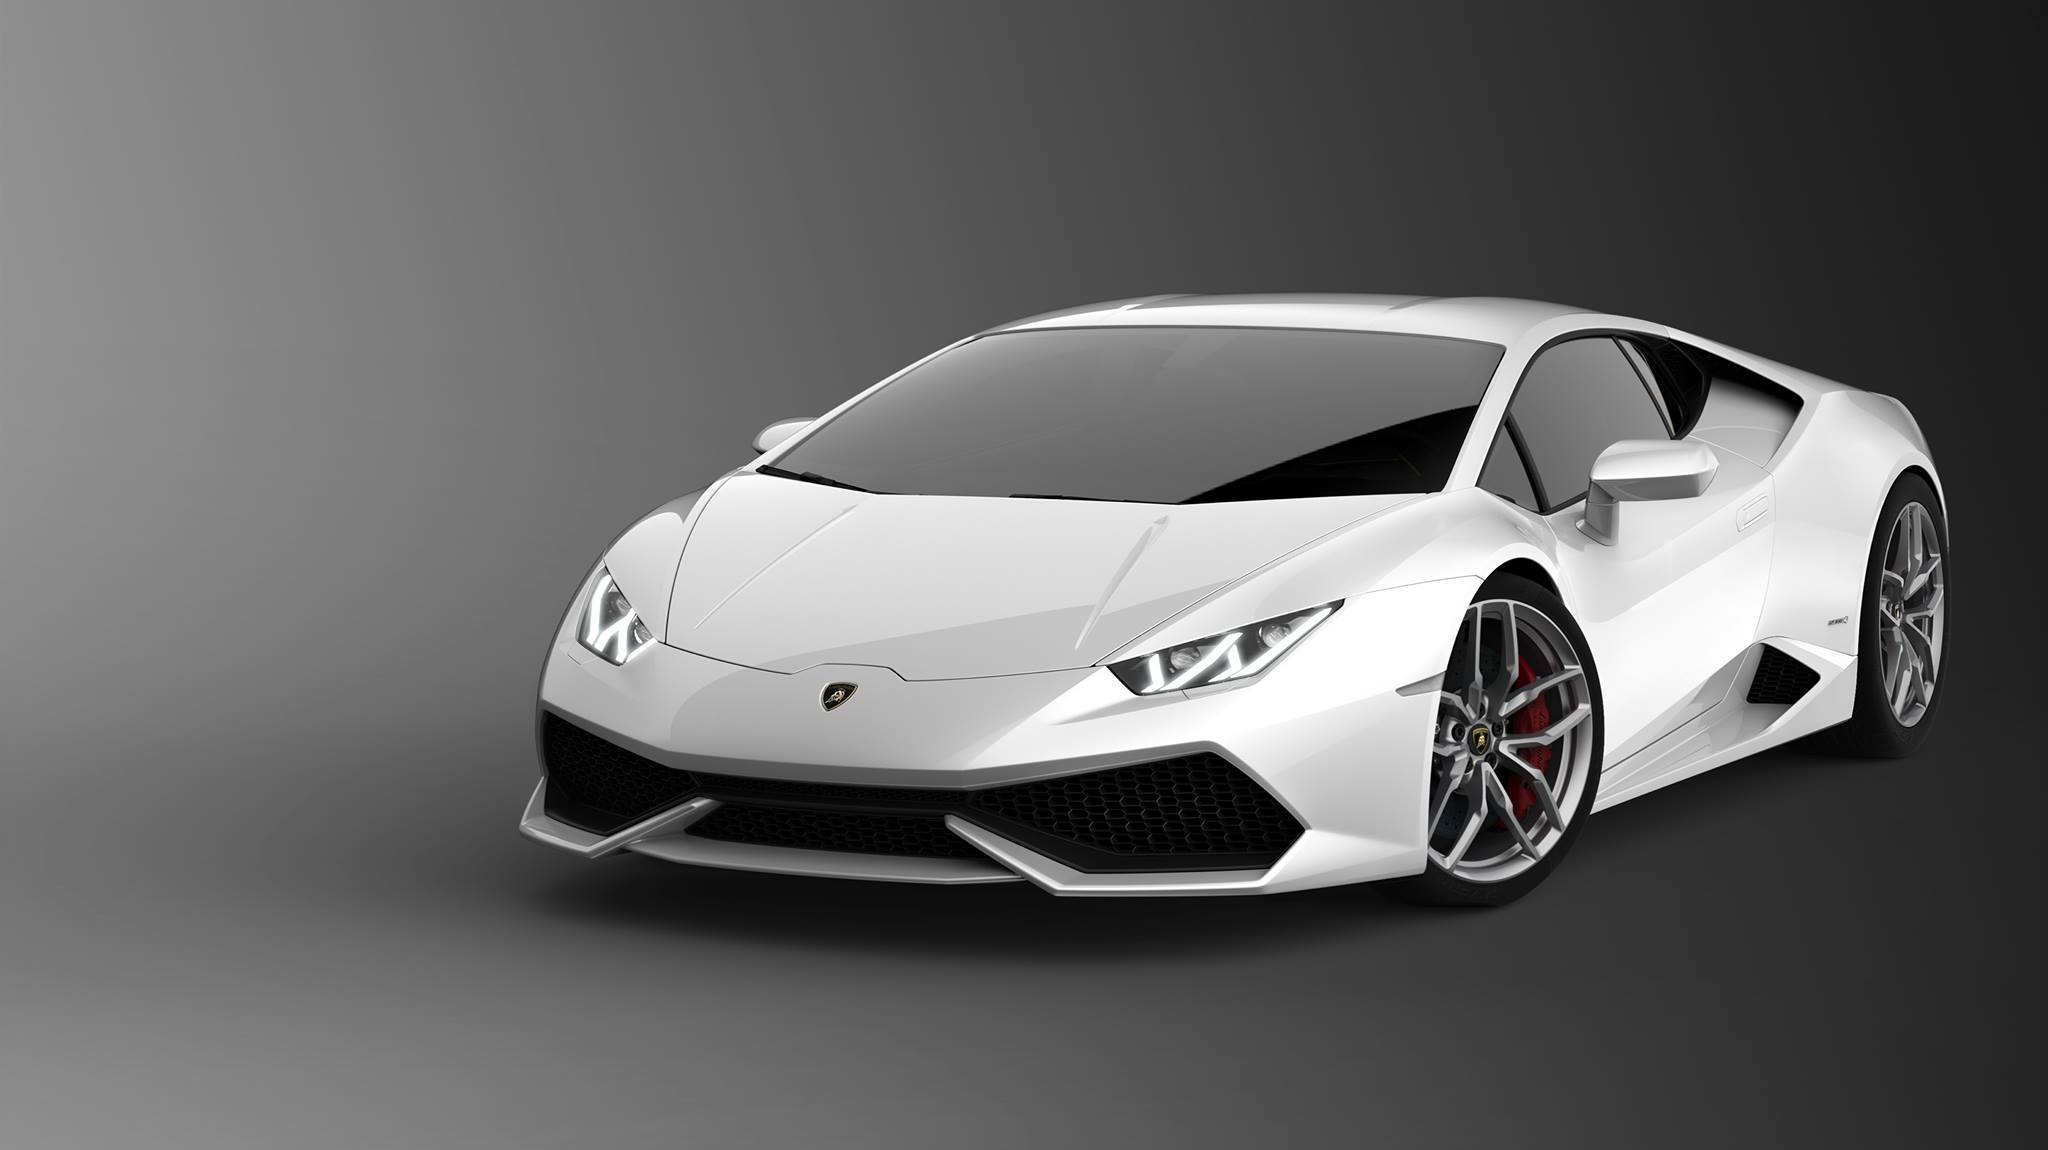 Lamborghini Huracan Download Wallpaper 2048x1150